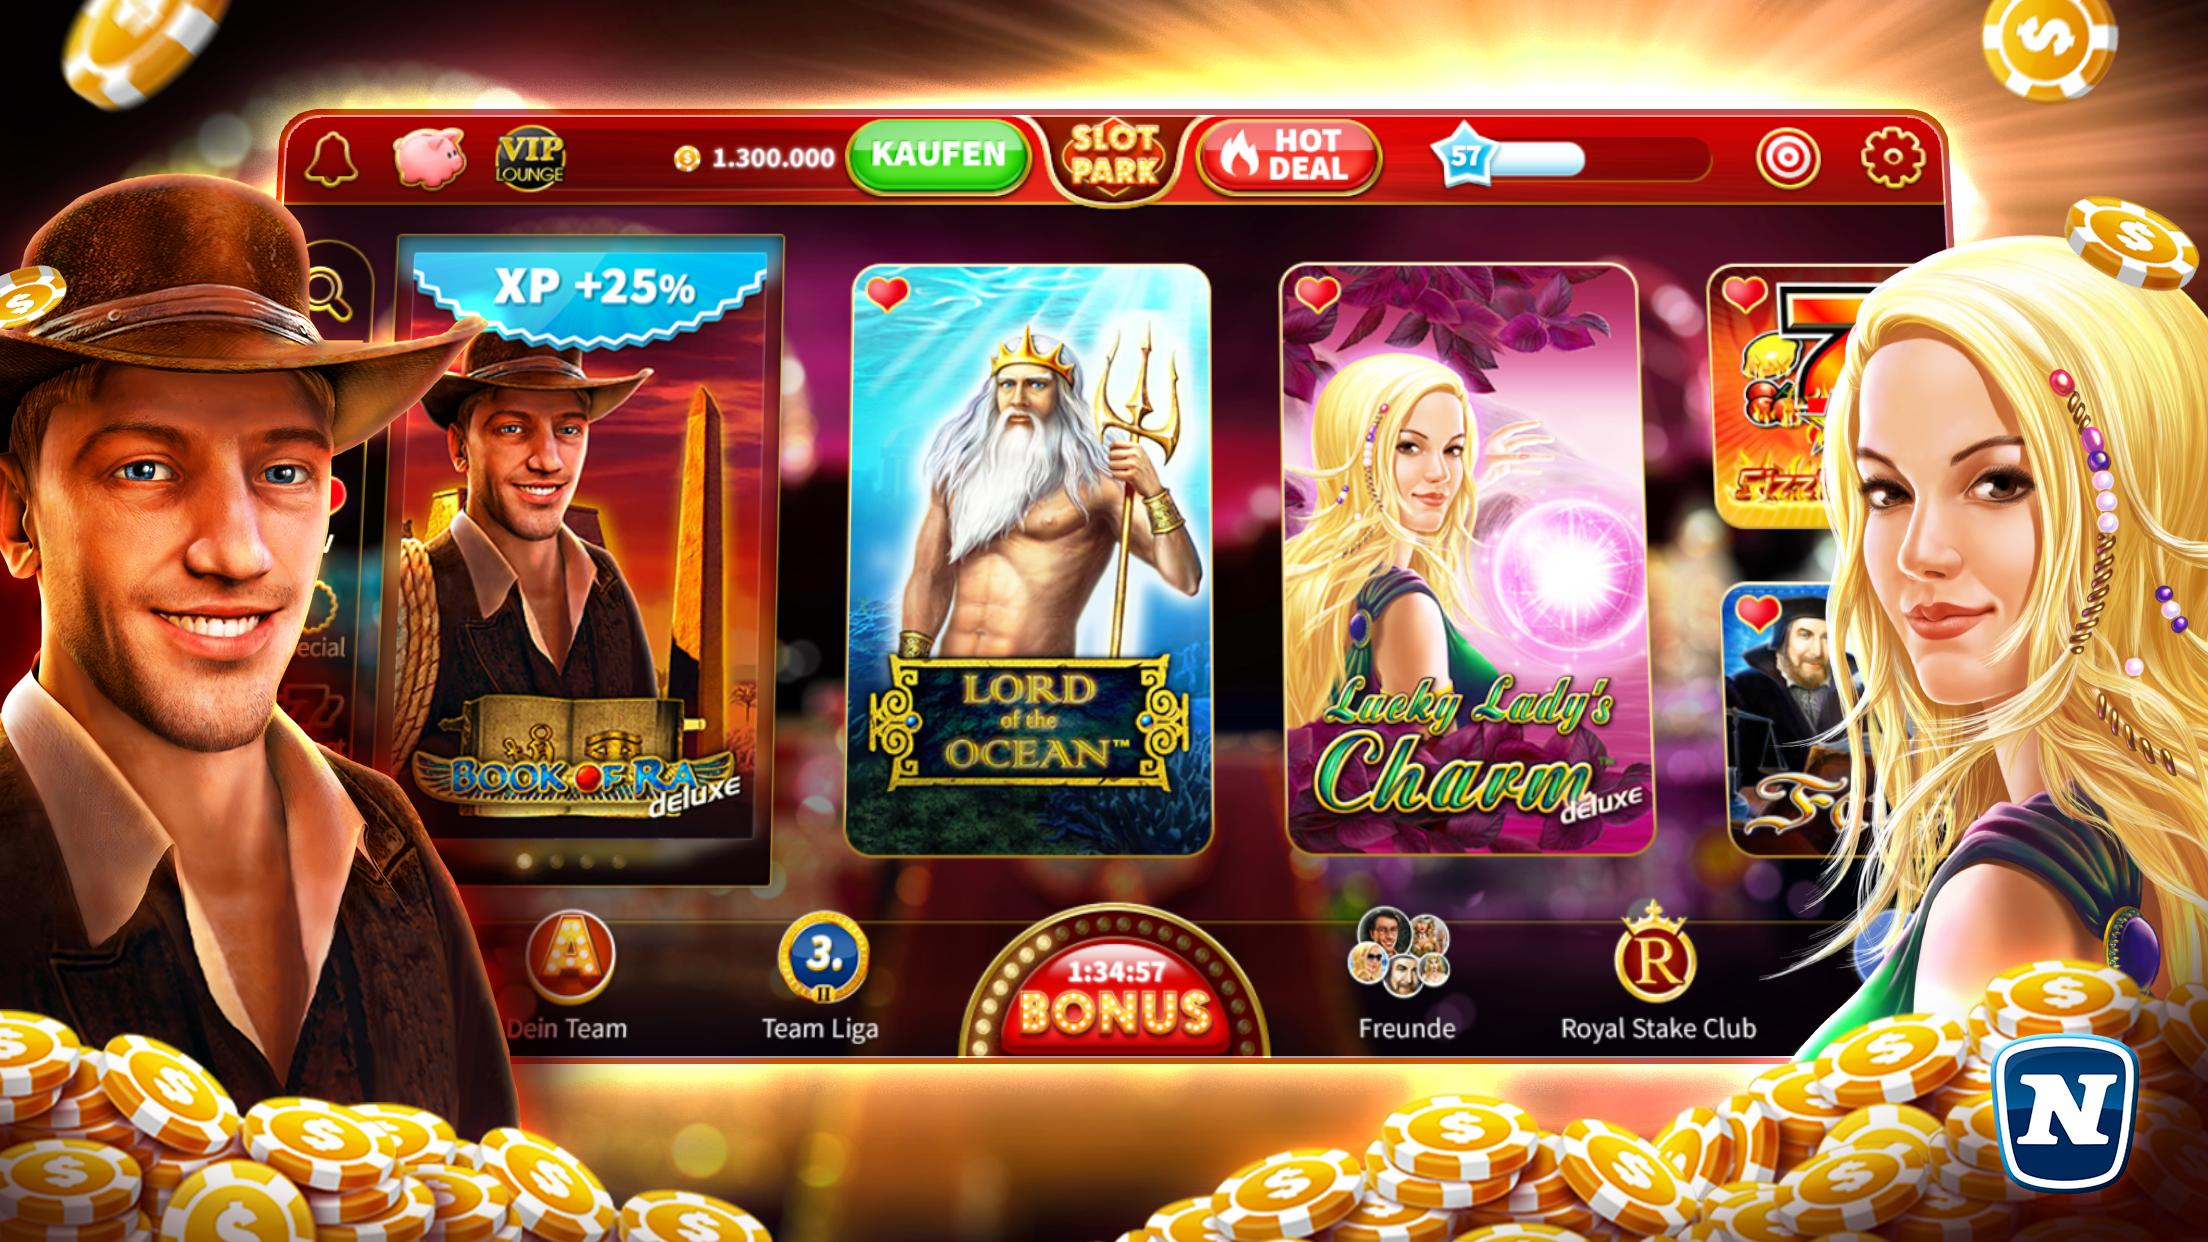 Slotpark Online Casino Games & Free Slot Machine 3.21.1 Screenshot 3